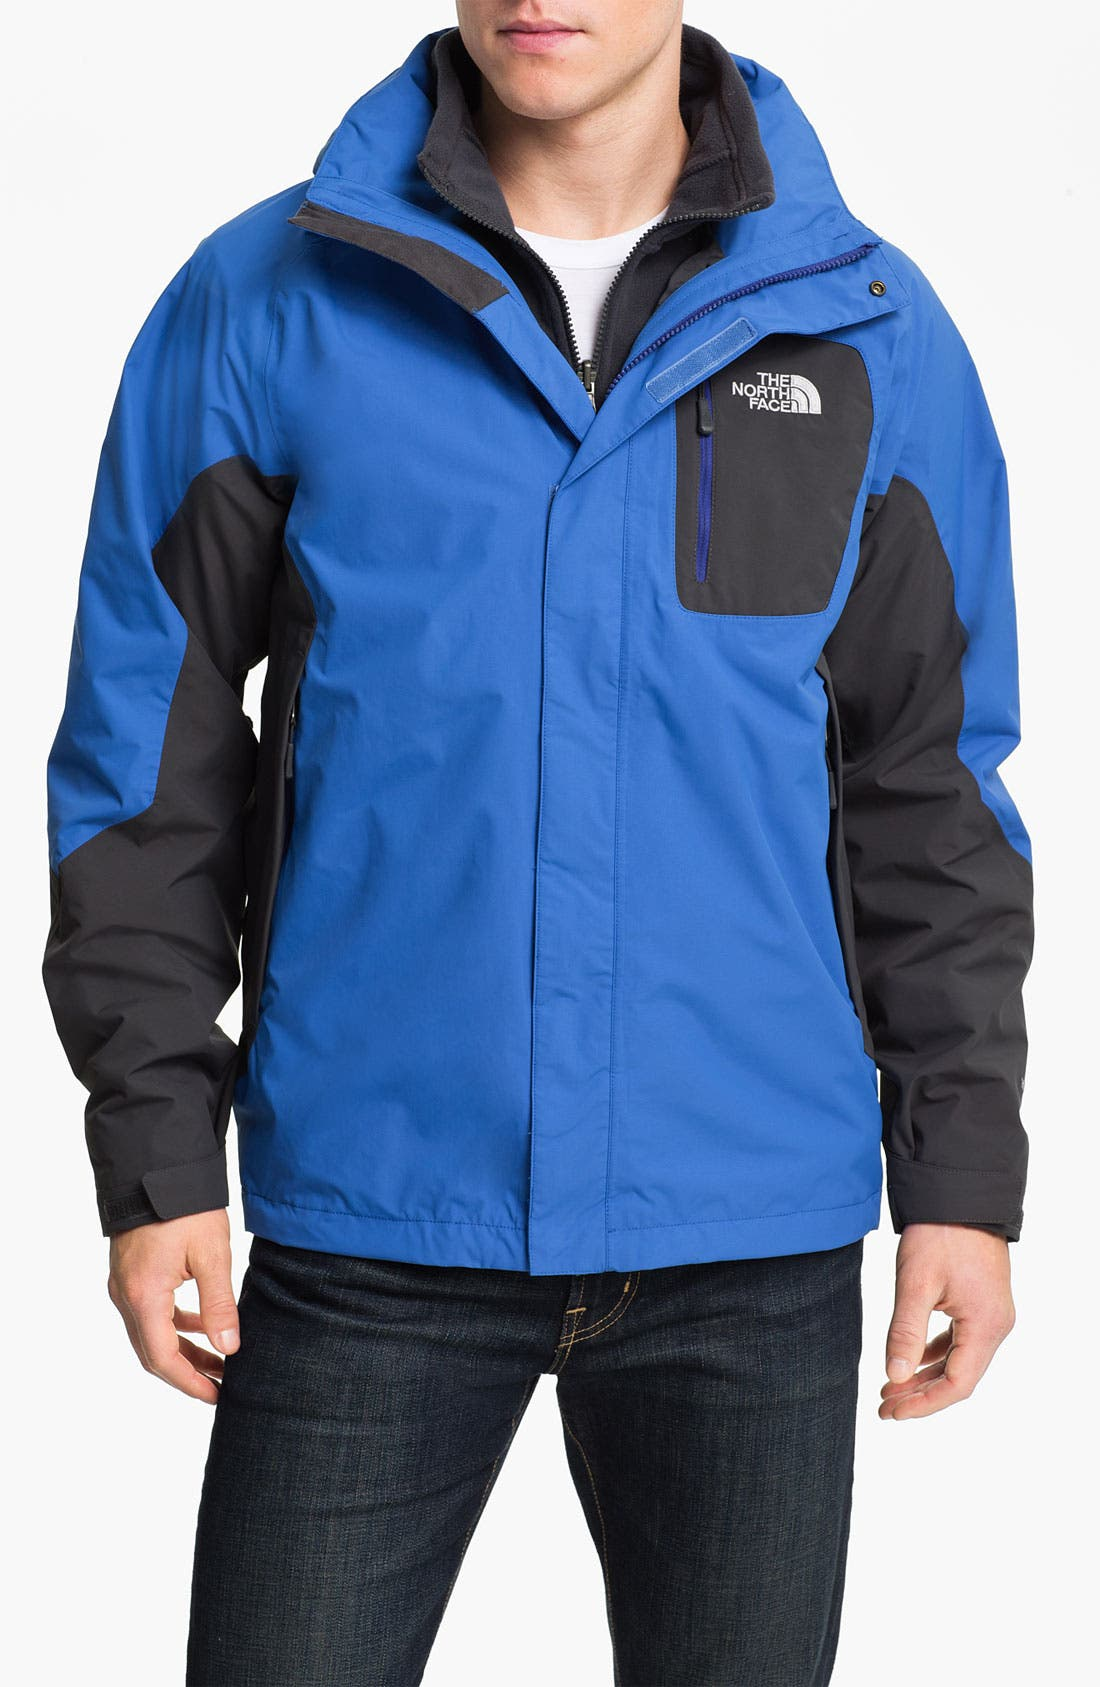 Alternate Image 1 Selected - The North Face 'Atlas' TriClimate® 3-in-1 Jacket